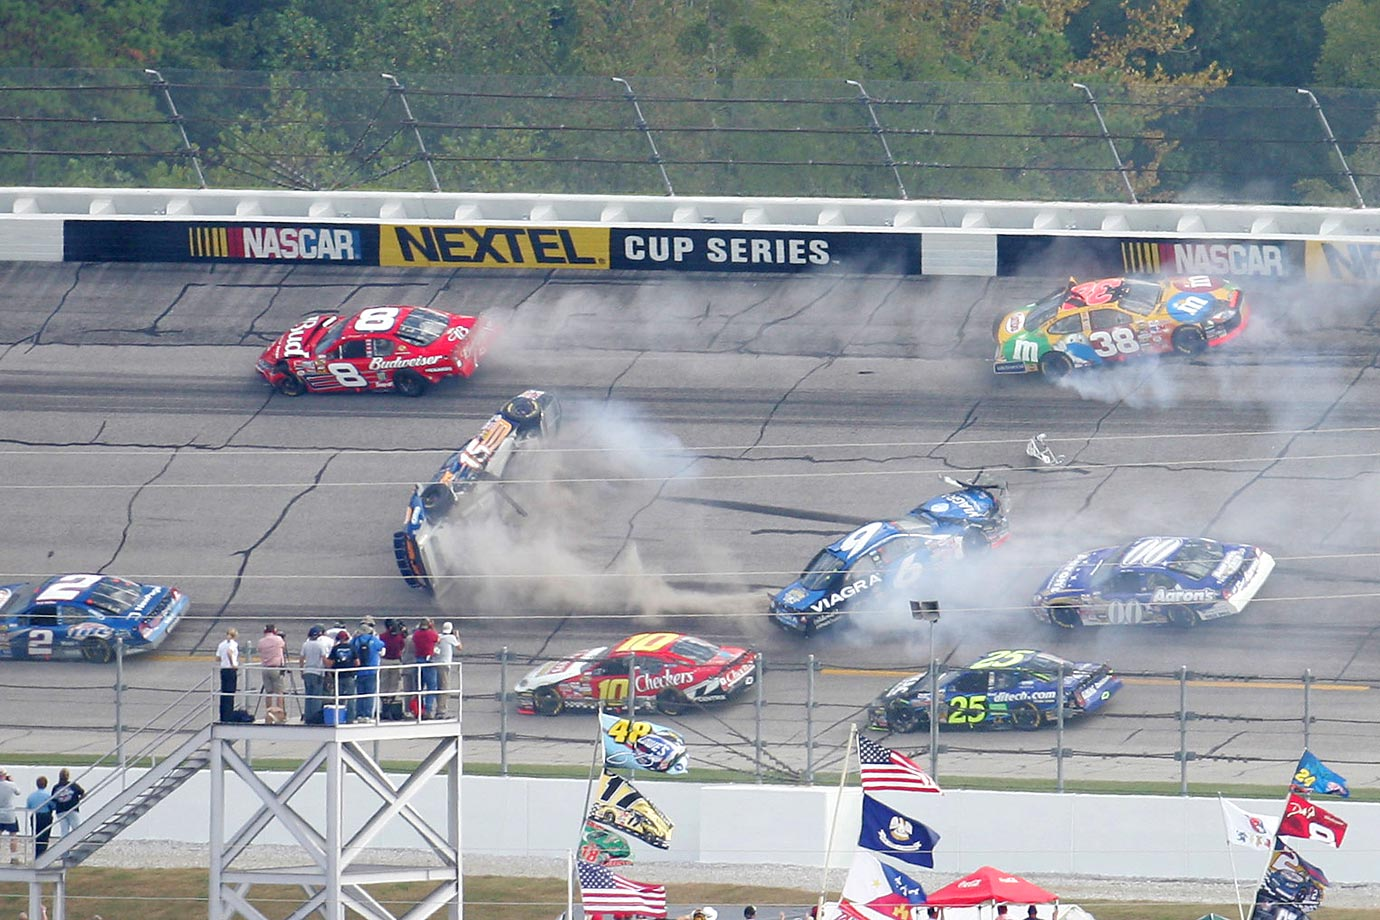 Two cars flipped over in separate accidents. Michael Waltrip was hit by Mark Martin and flipped after being involved in a wreck that began when Jimmie Johnson spun Elliott Sadler. Not long after, Ryan Newman spun Casey Mears, which started a chain reaction resulting in Scott Riggs flipping several times before being hit by Jeff Burton. The race was incident-filled, and Dale Jarrett took his last win in the race. Scenes from this race were used in the movie Talladega Nights: The Ballad of Ricky Bobby and actors from the movie were introduced in driver introductions.